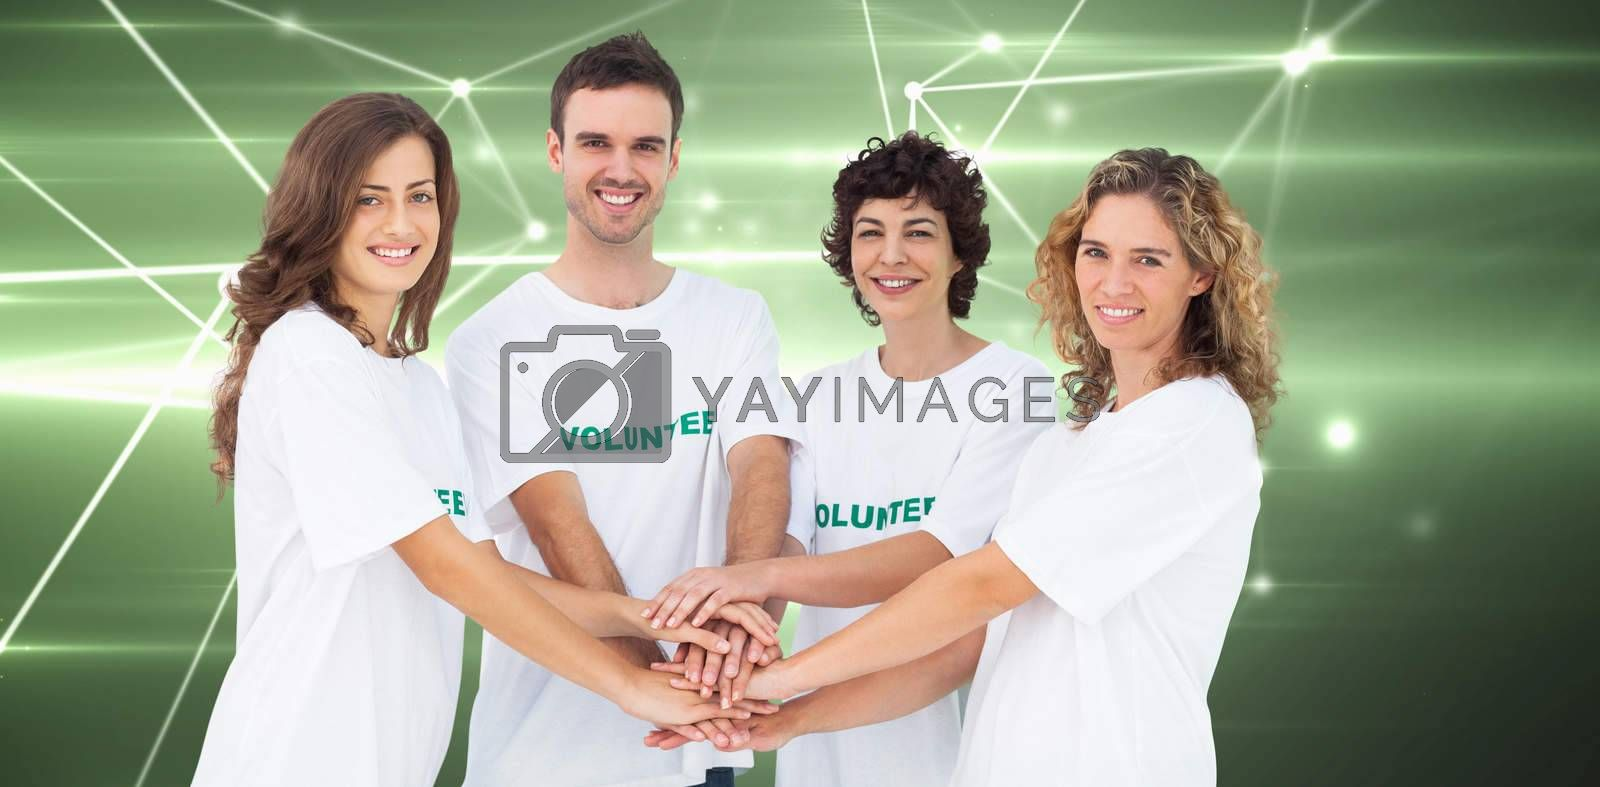 Smiling volunteer group piling up their hands against glowing geometric design